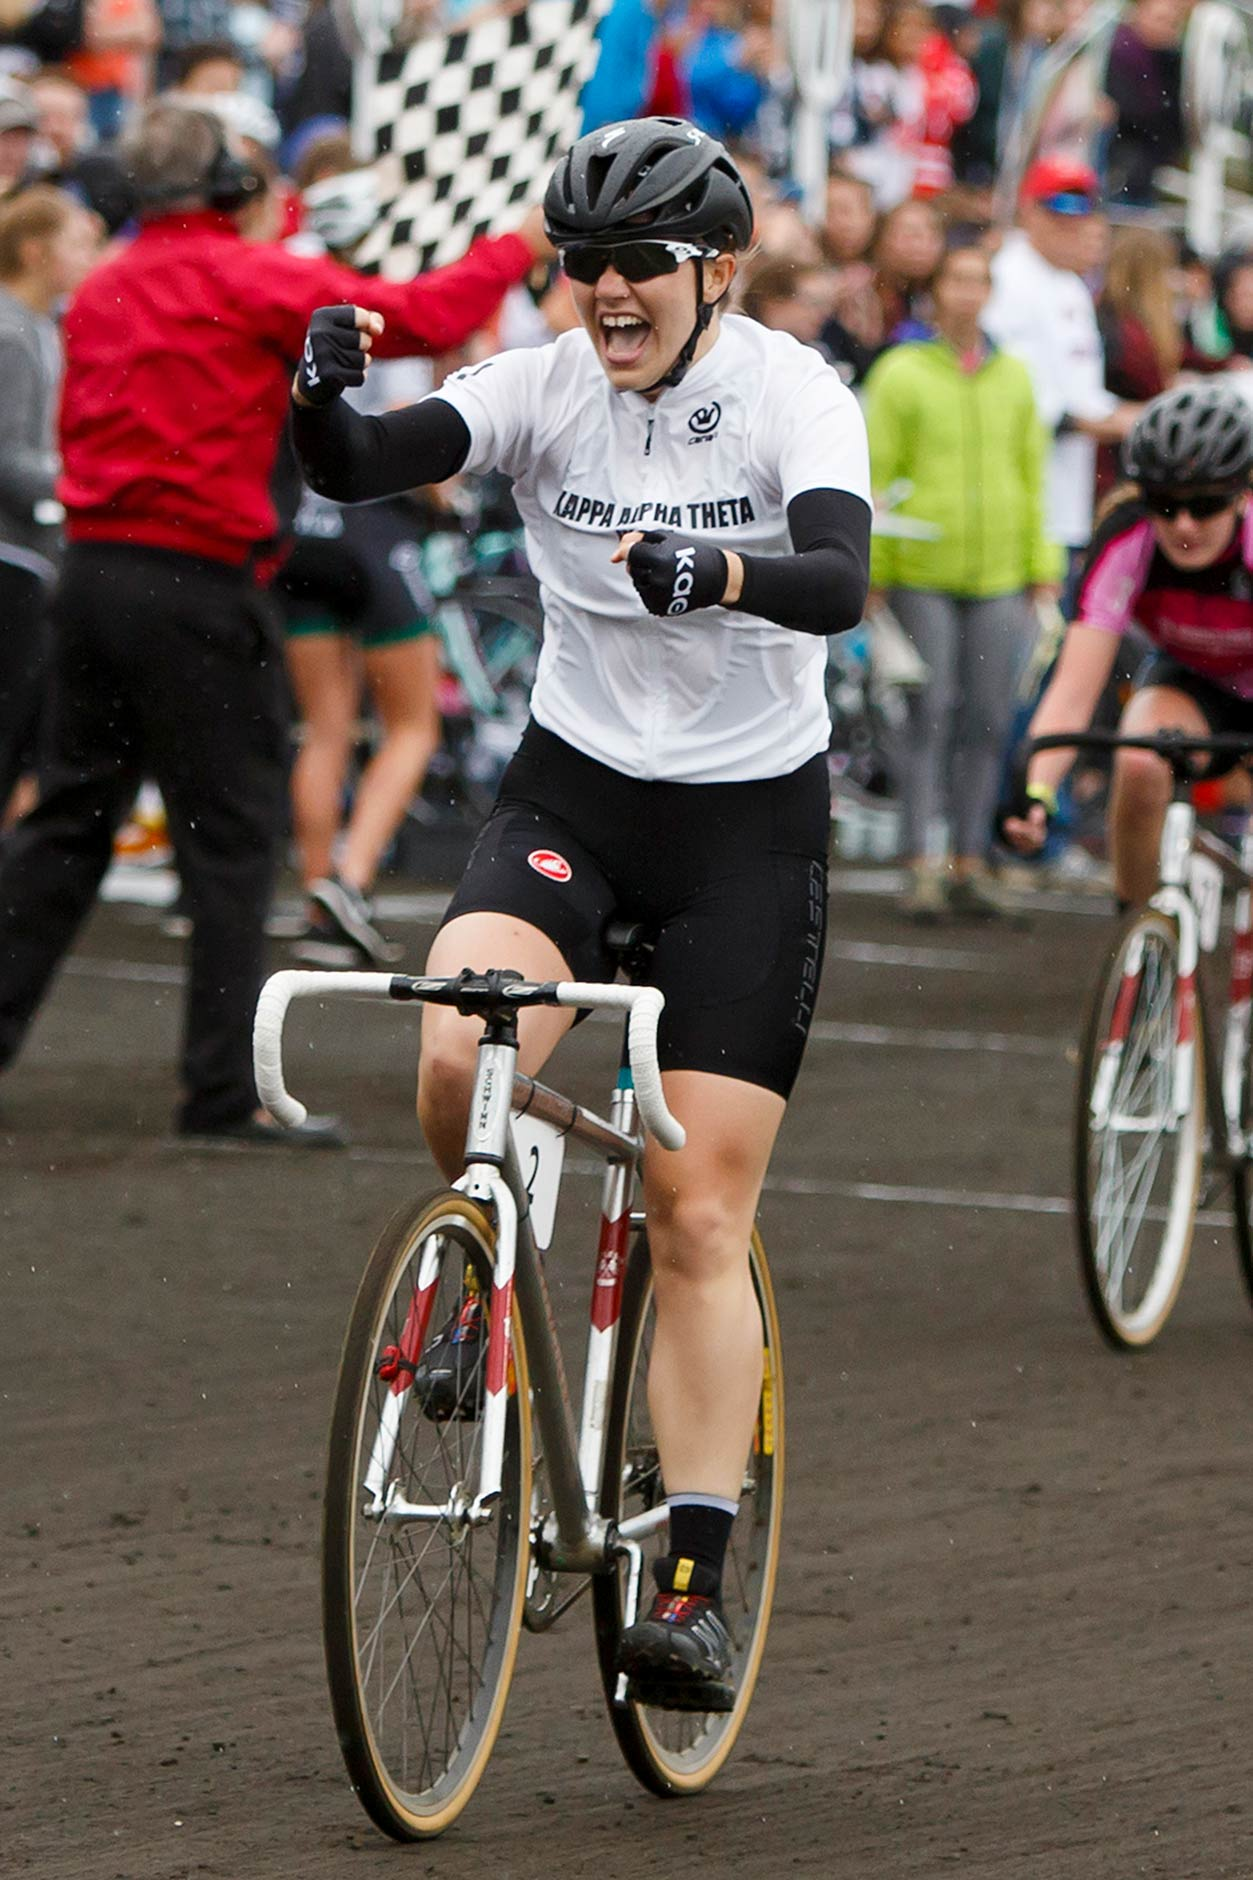 Kappa Alpha Theta's Grace Bennett celebrates as she rides to a victory in the Women's Little 500 at Bill Armstrong Stadium on Friday, April 21, 2017. (James Brosher/IU Communications)